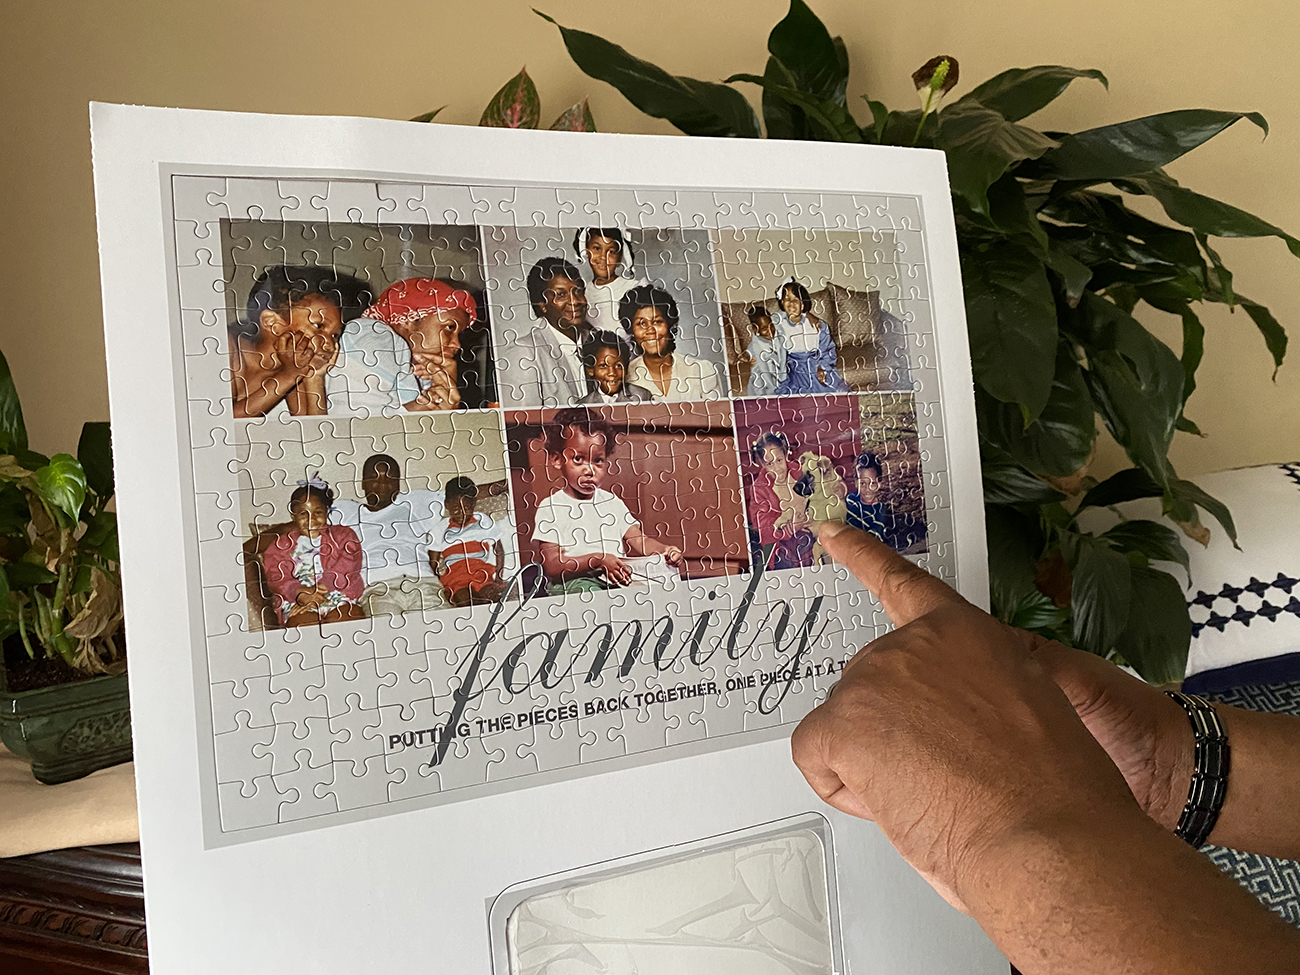 A father dreams of justice in year since Beatties Ford shooting